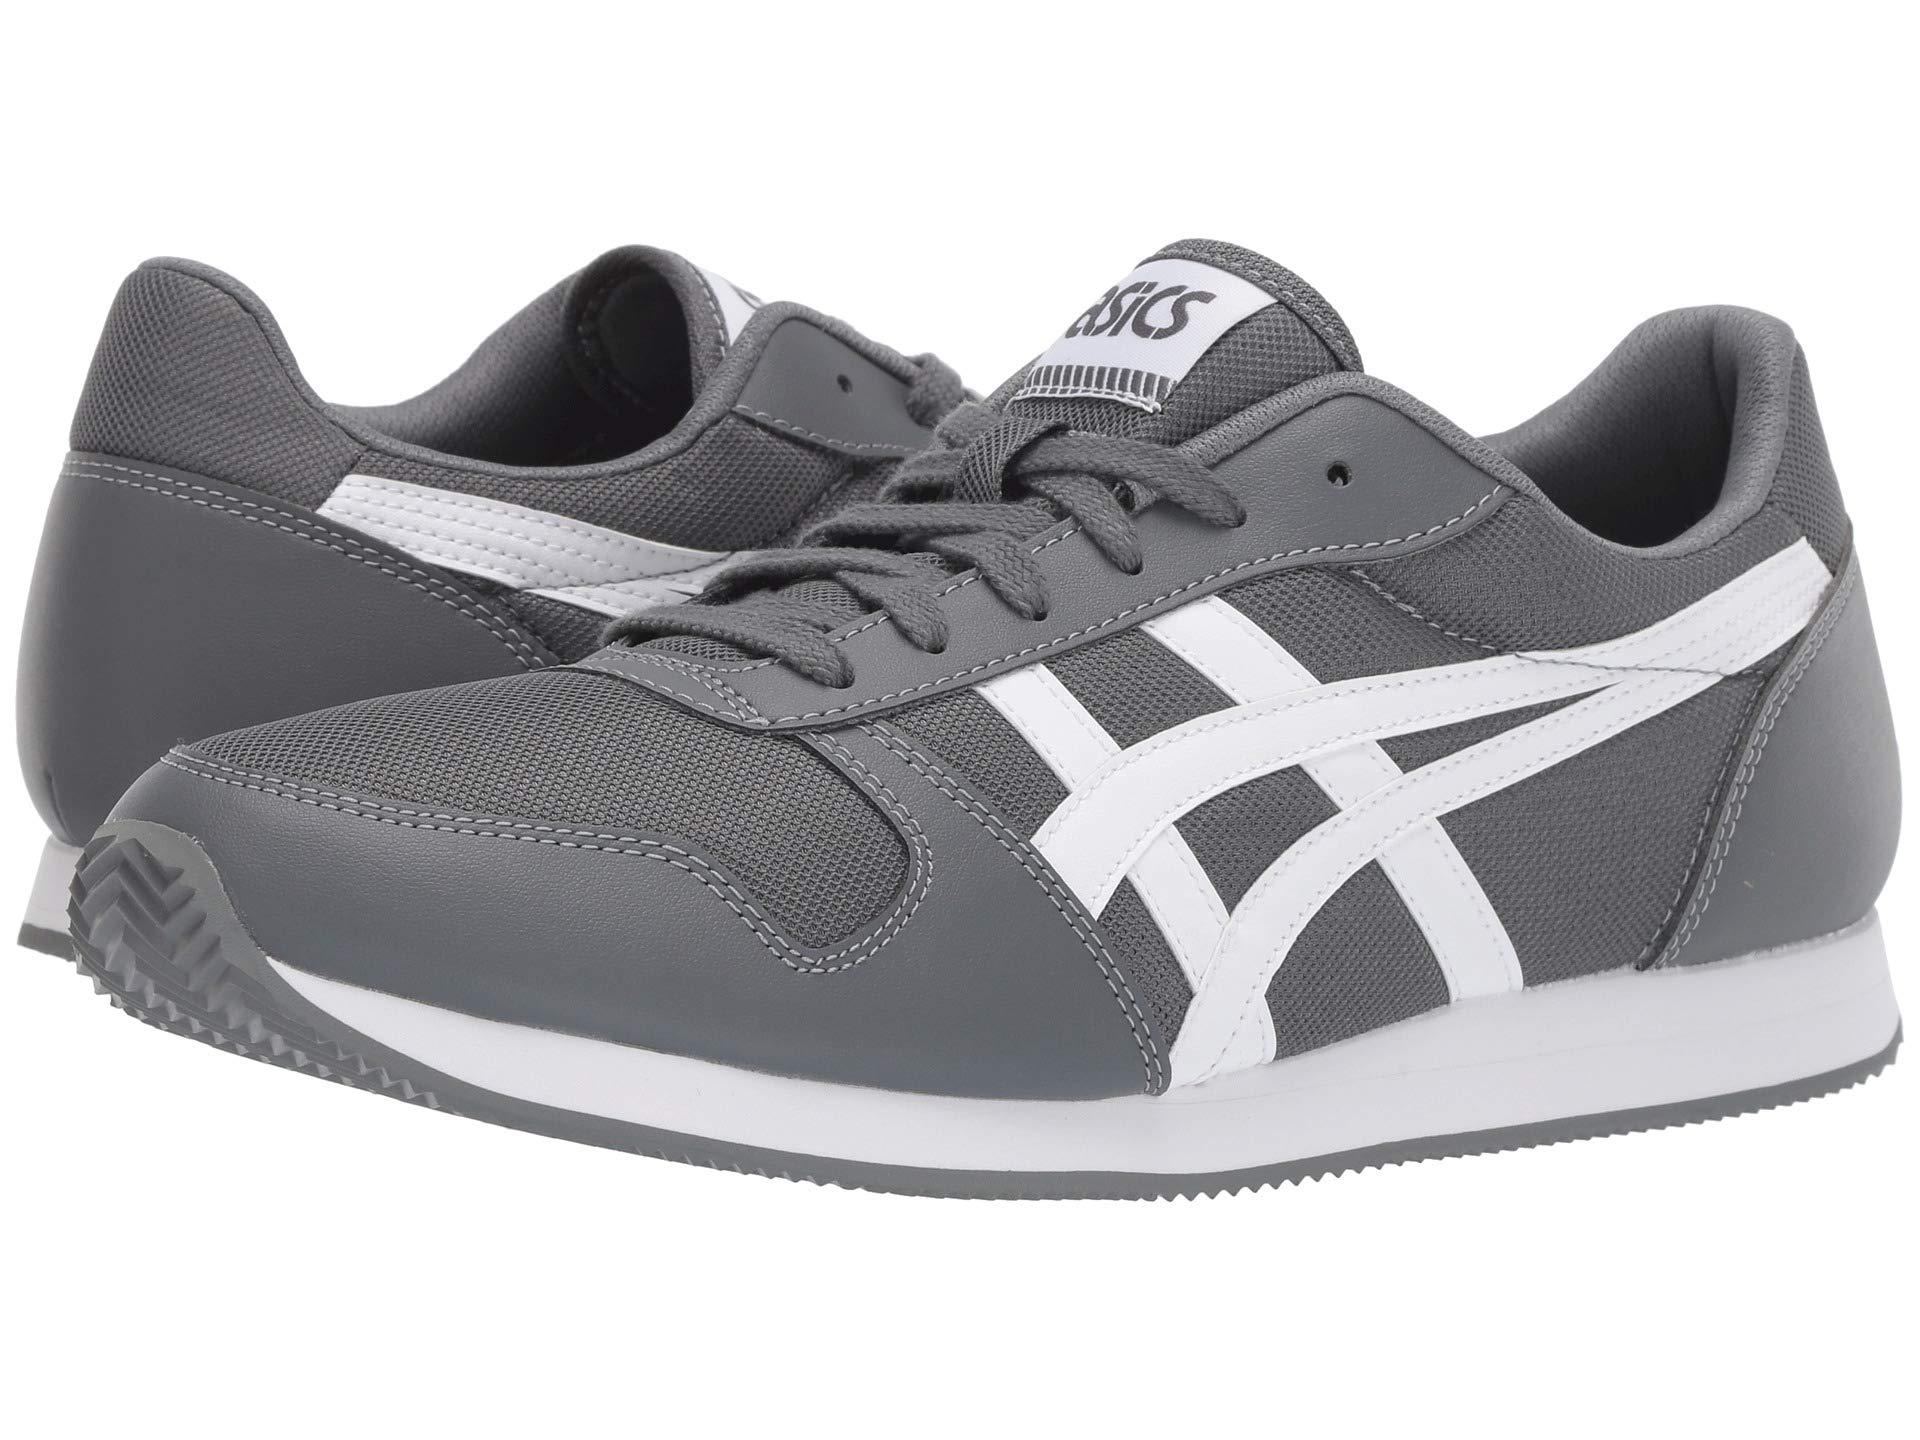 0dbf7784830046 Lyst - Asics Curreo Ii (black white) Classic Shoes in Gray for Men